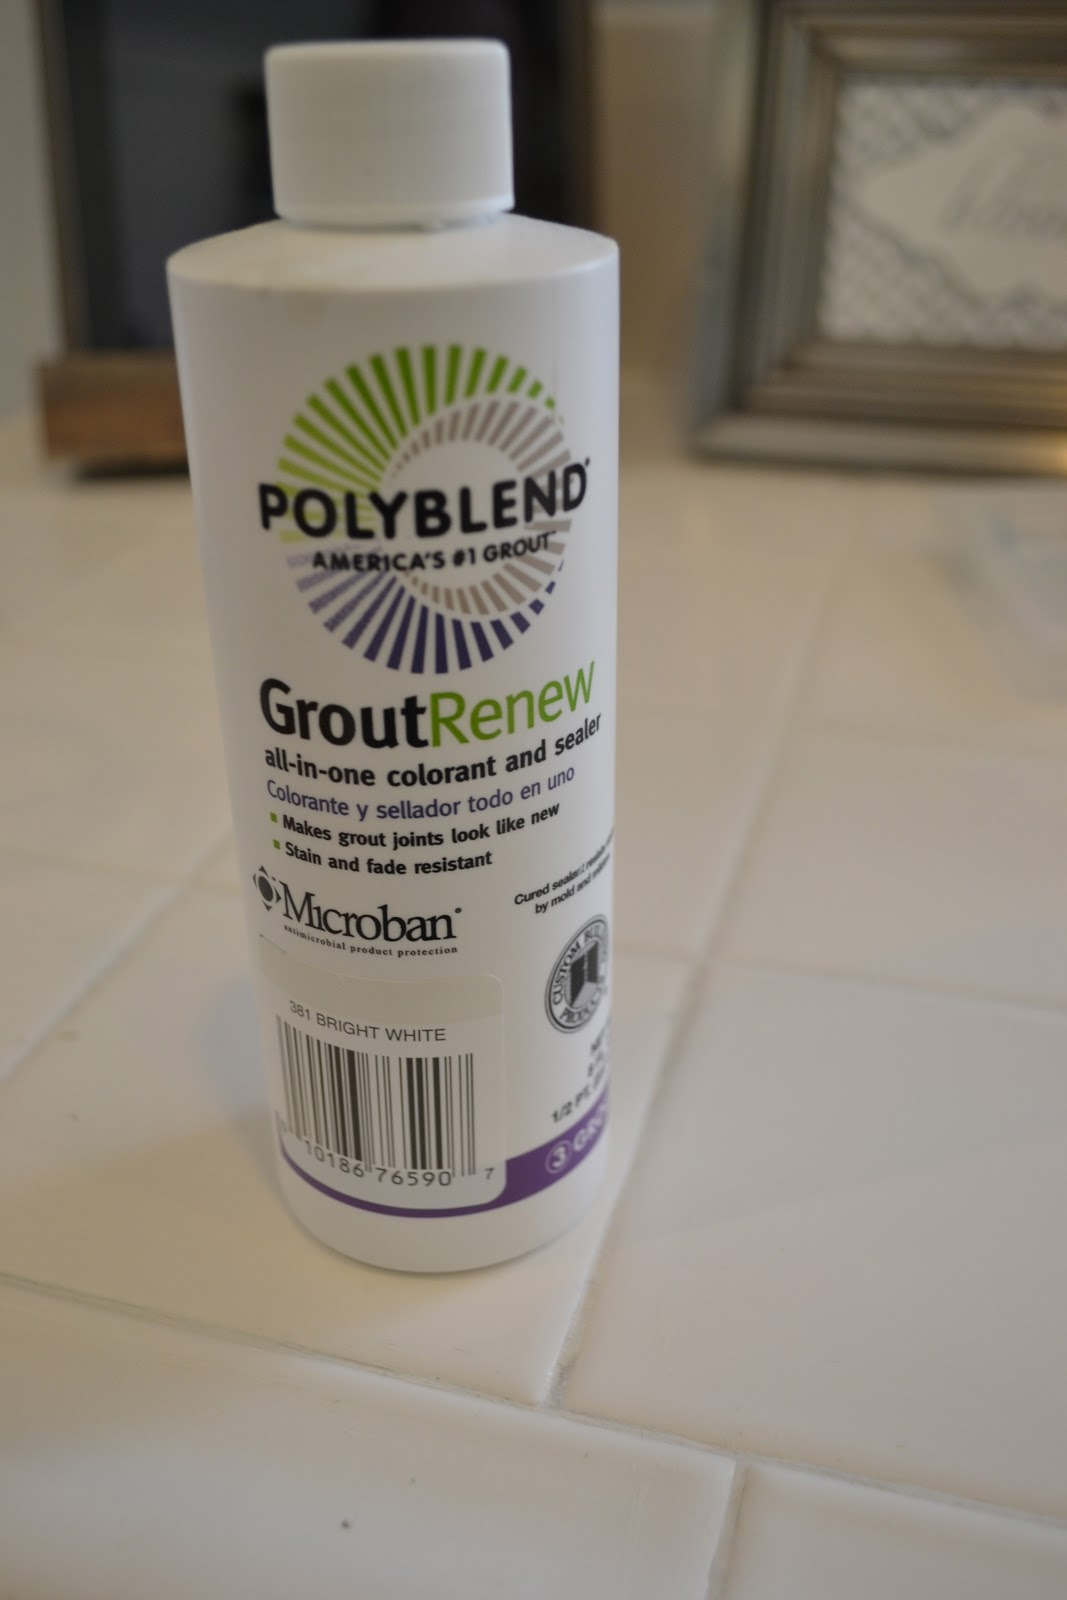 Queen Of Kings Polyblend Grout Renew Review